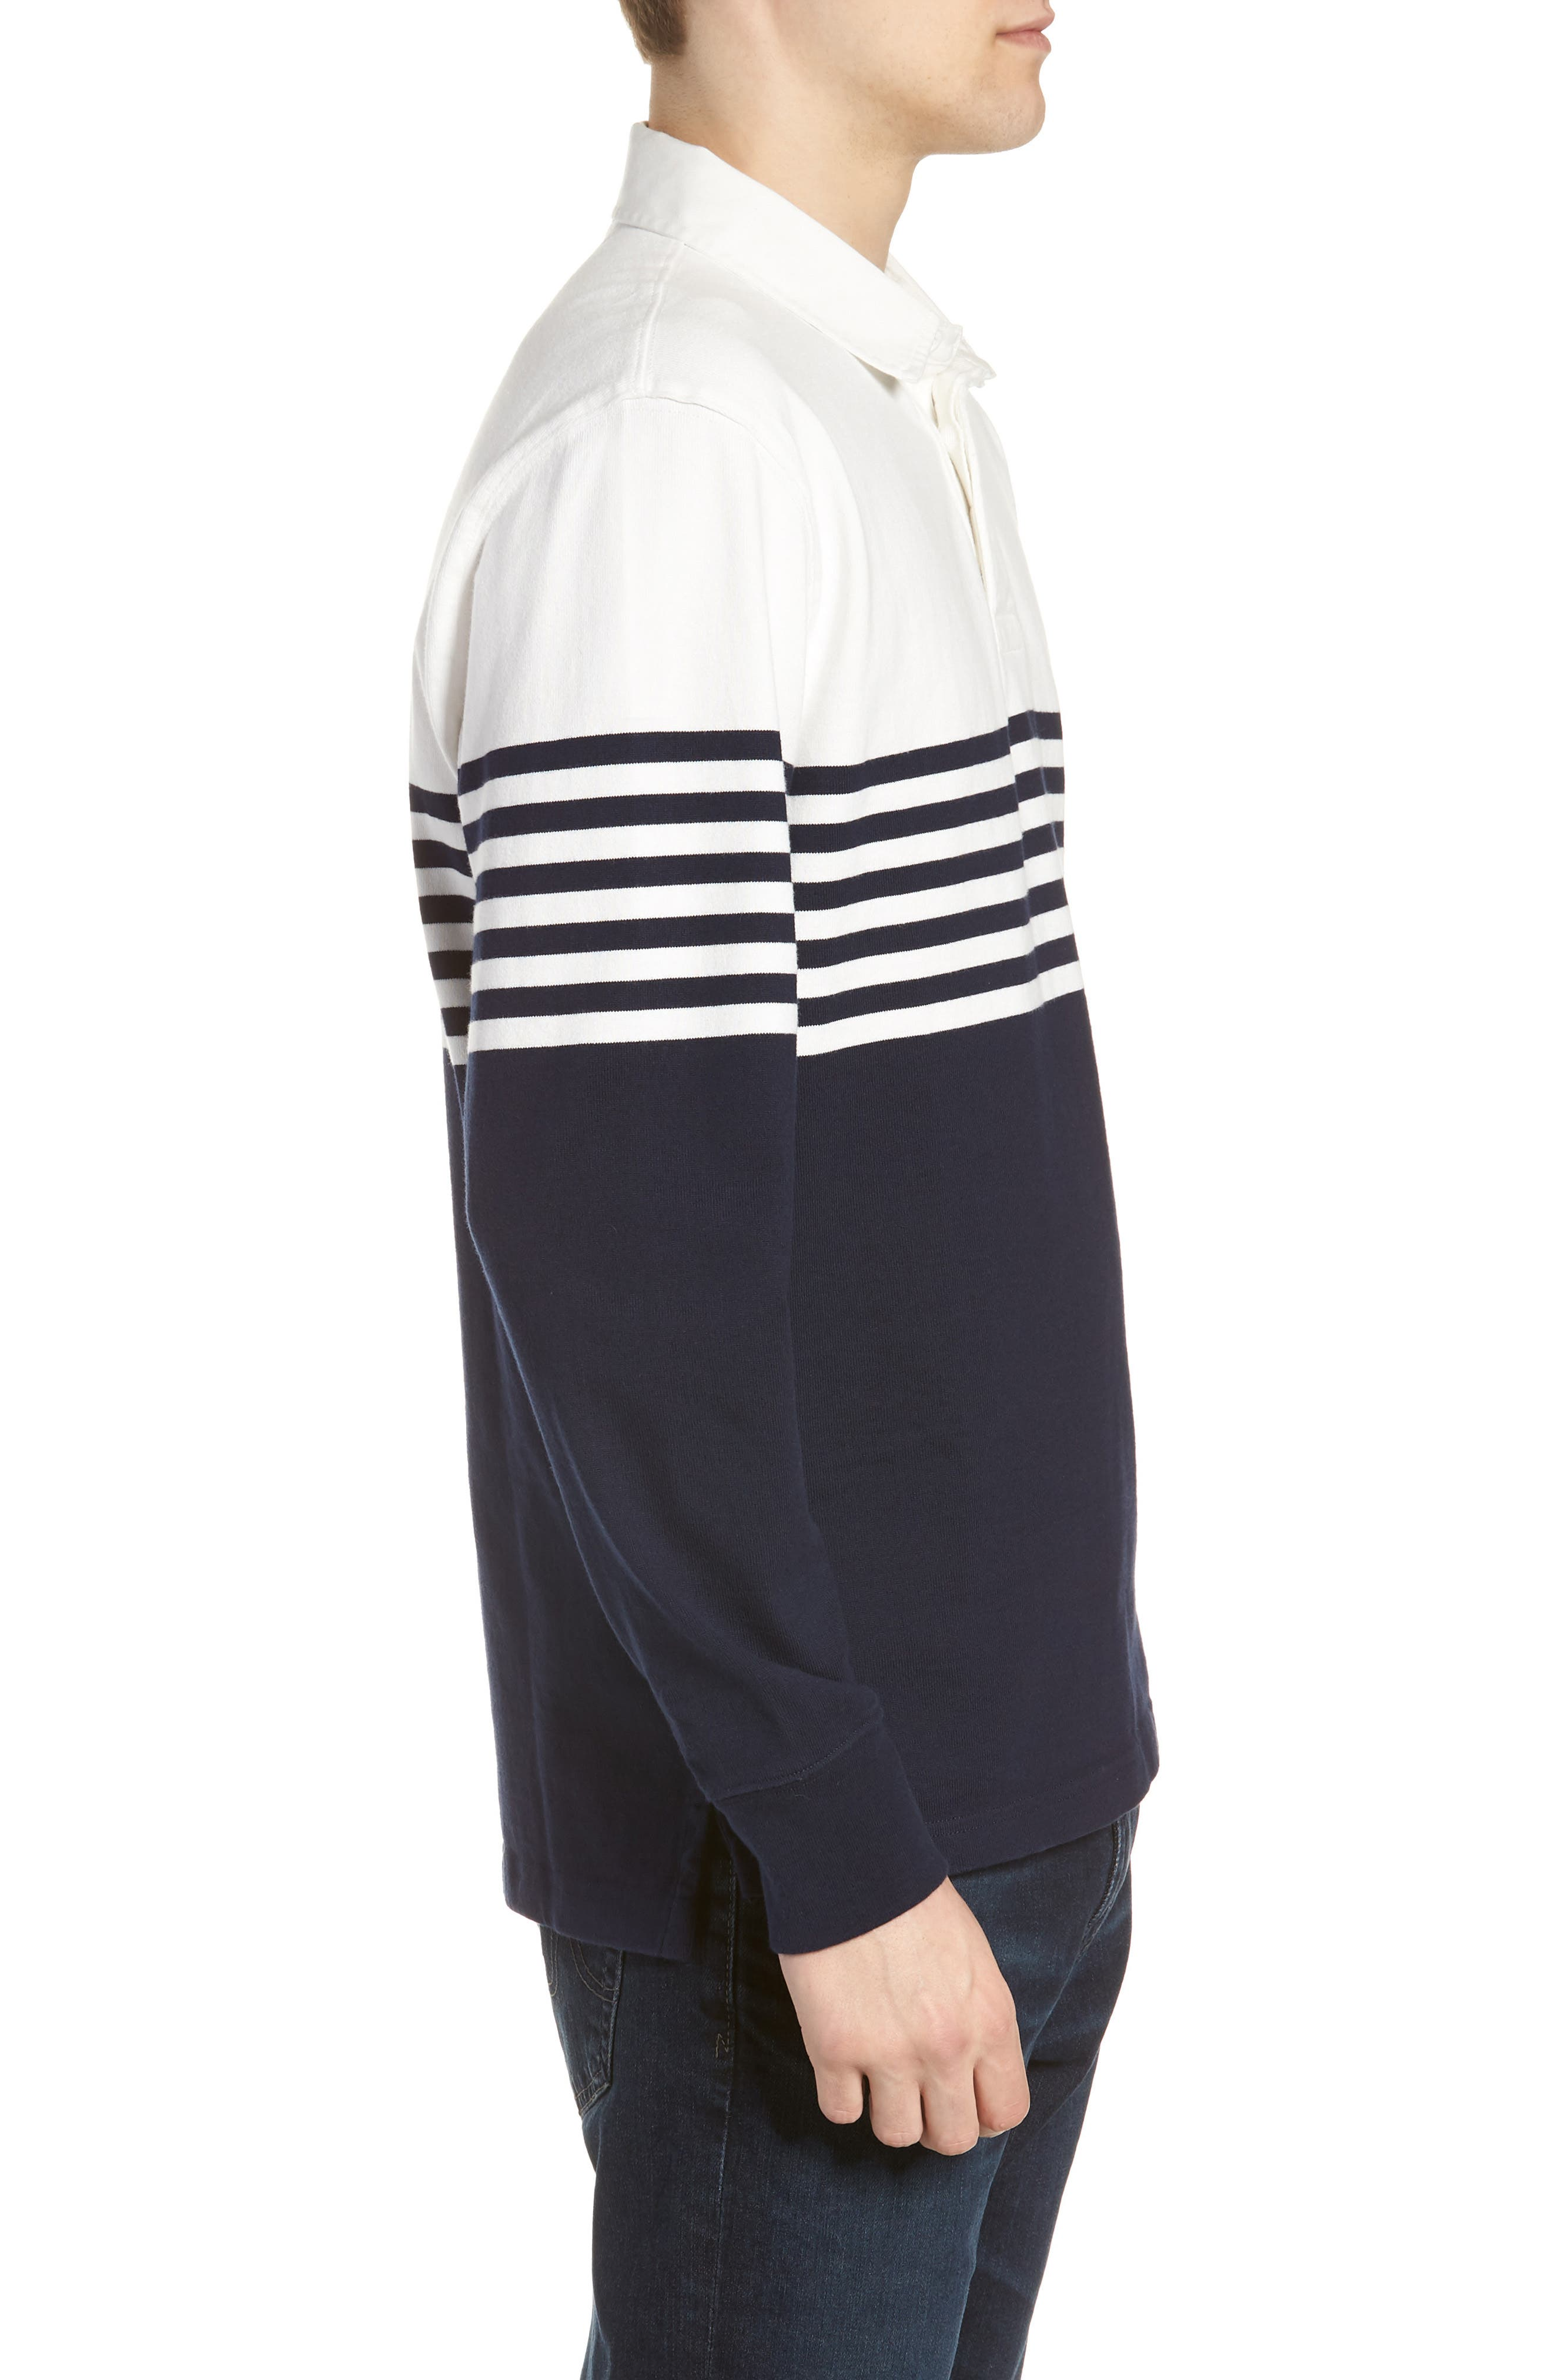 1984 Colorblock Stripe Rugby Shirt,                             Alternate thumbnail 3, color,                             Navy White